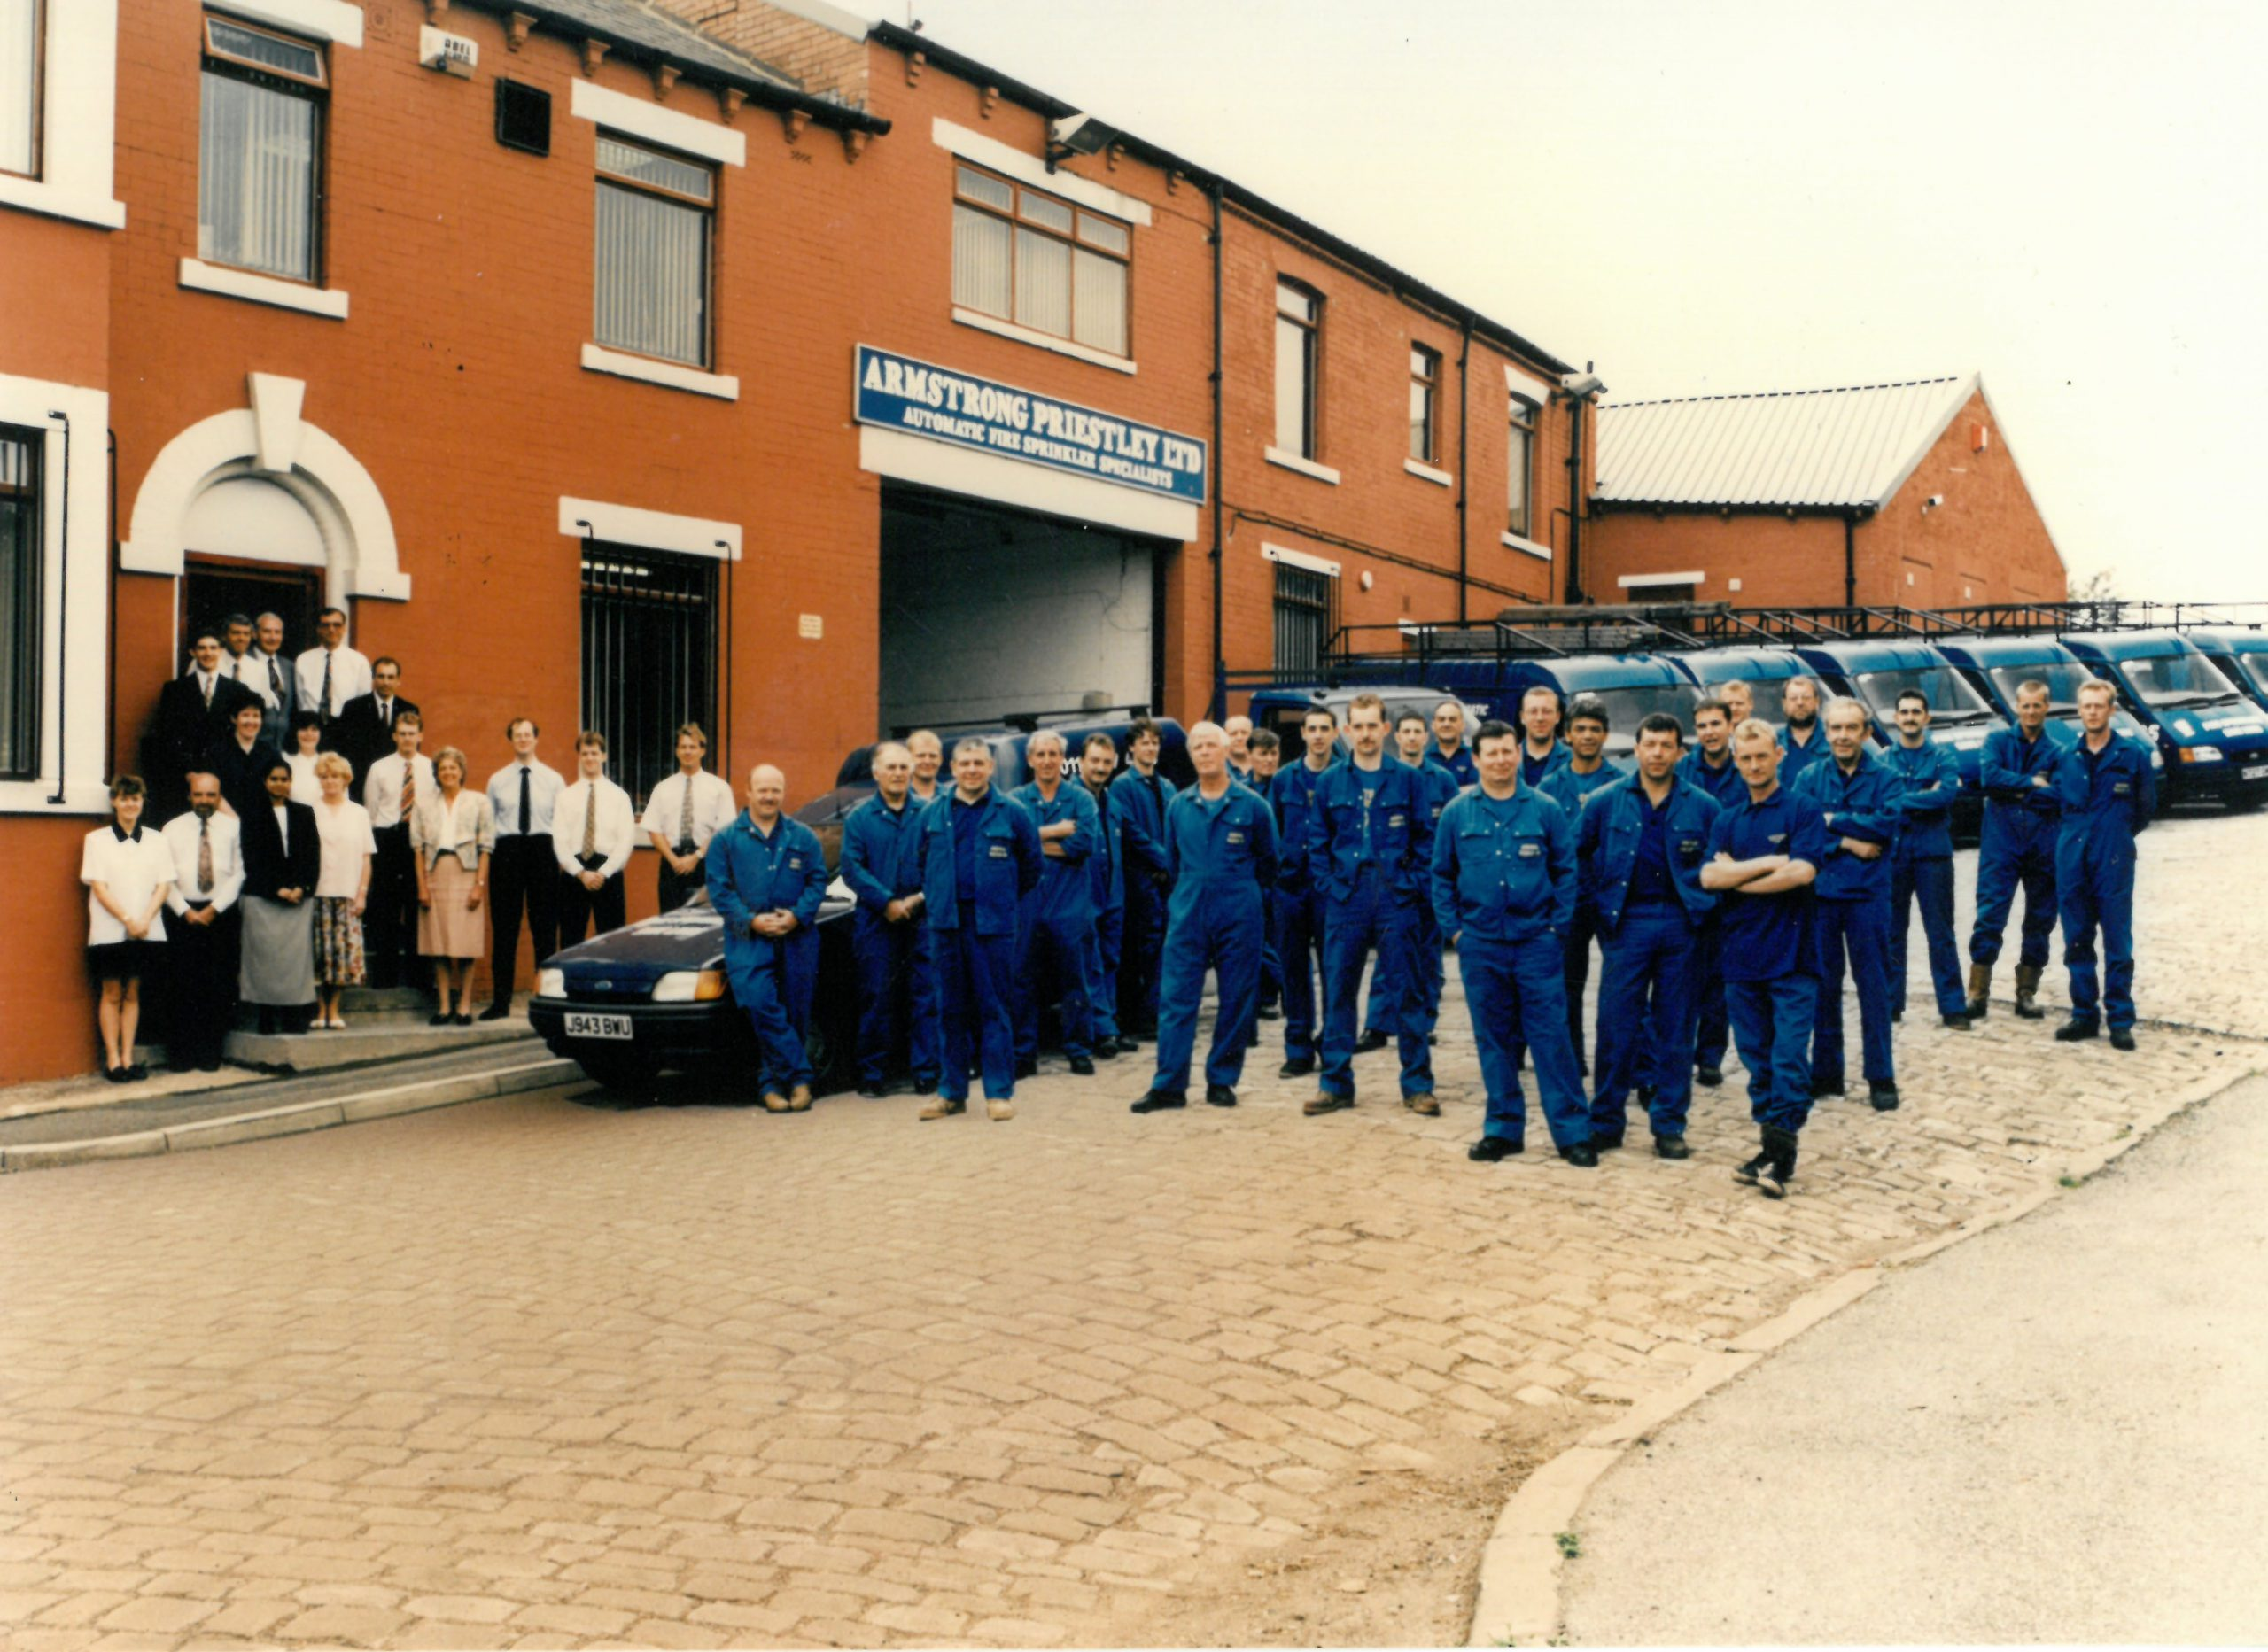 1995 Armstrong Priestley Employees outside of Flaxton House